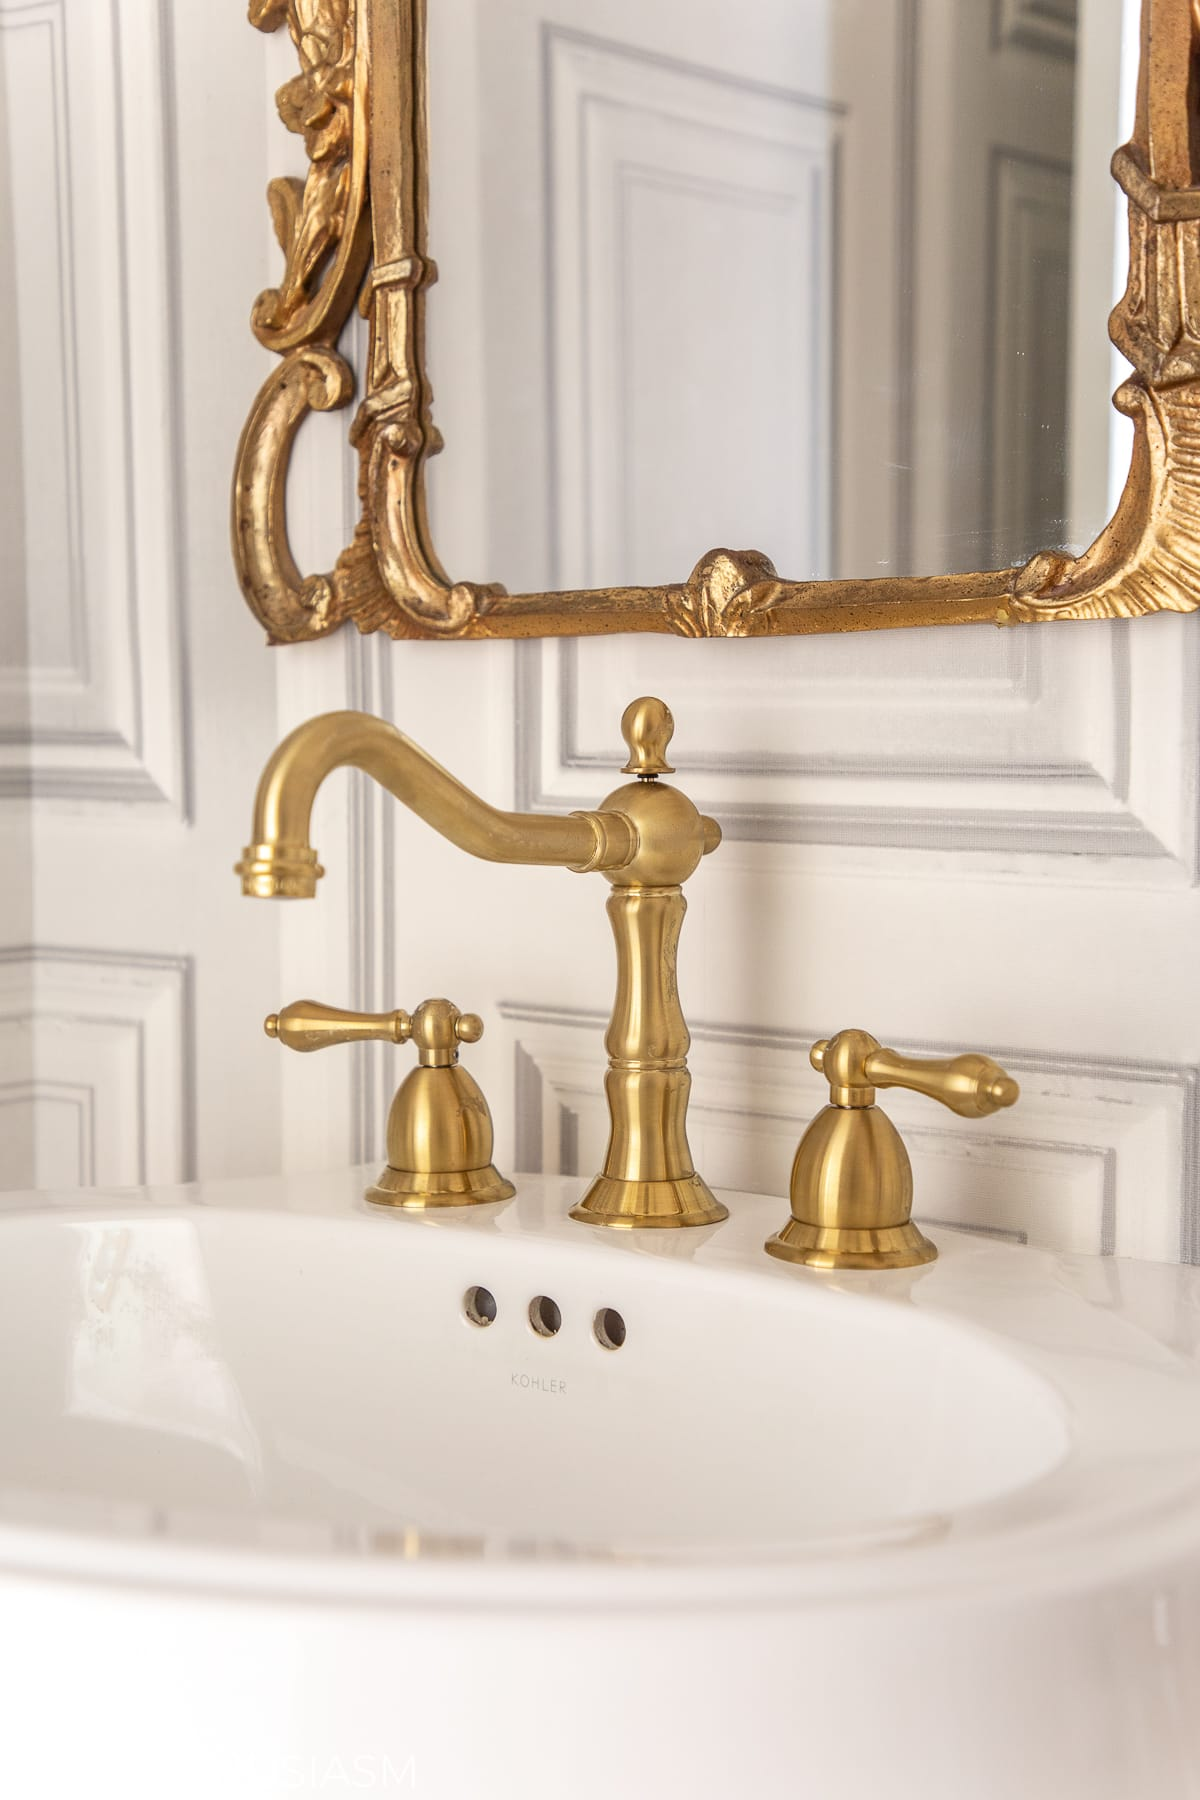 powder room ideas for sink faucet